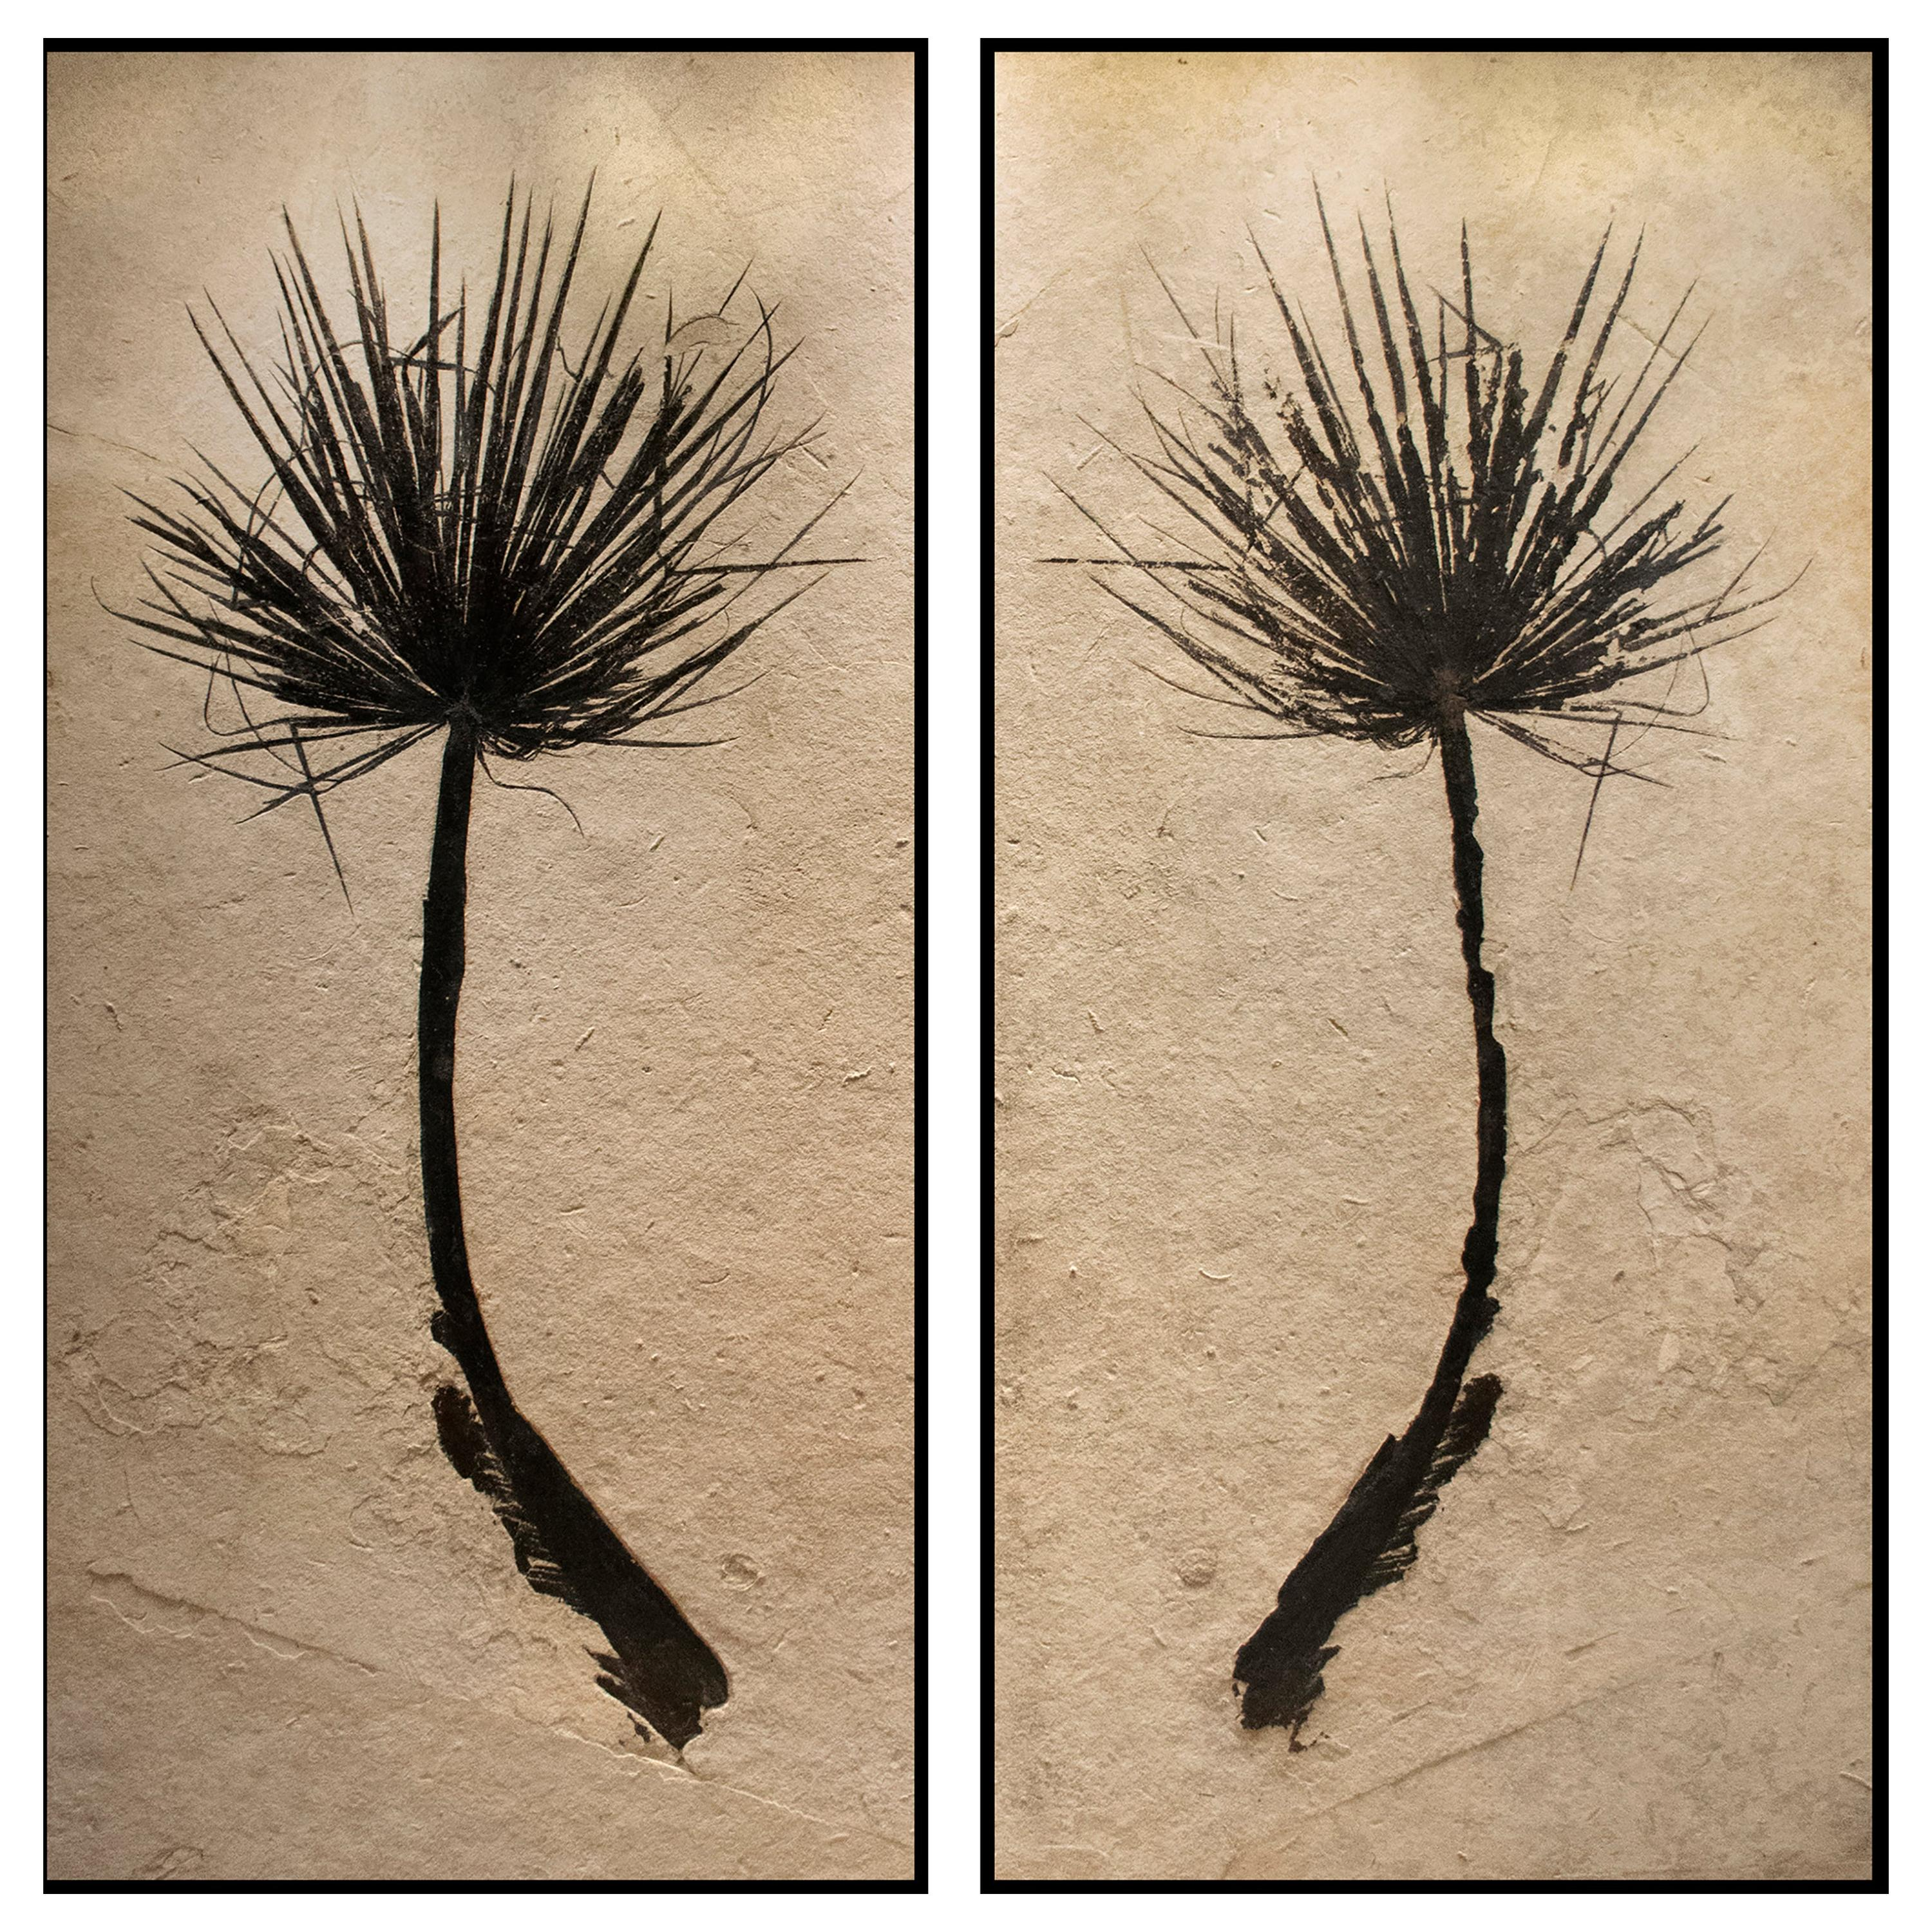 50 Million Year Old Eocene Era Fossil Palm Frond Pair in Stone, from Wyoming